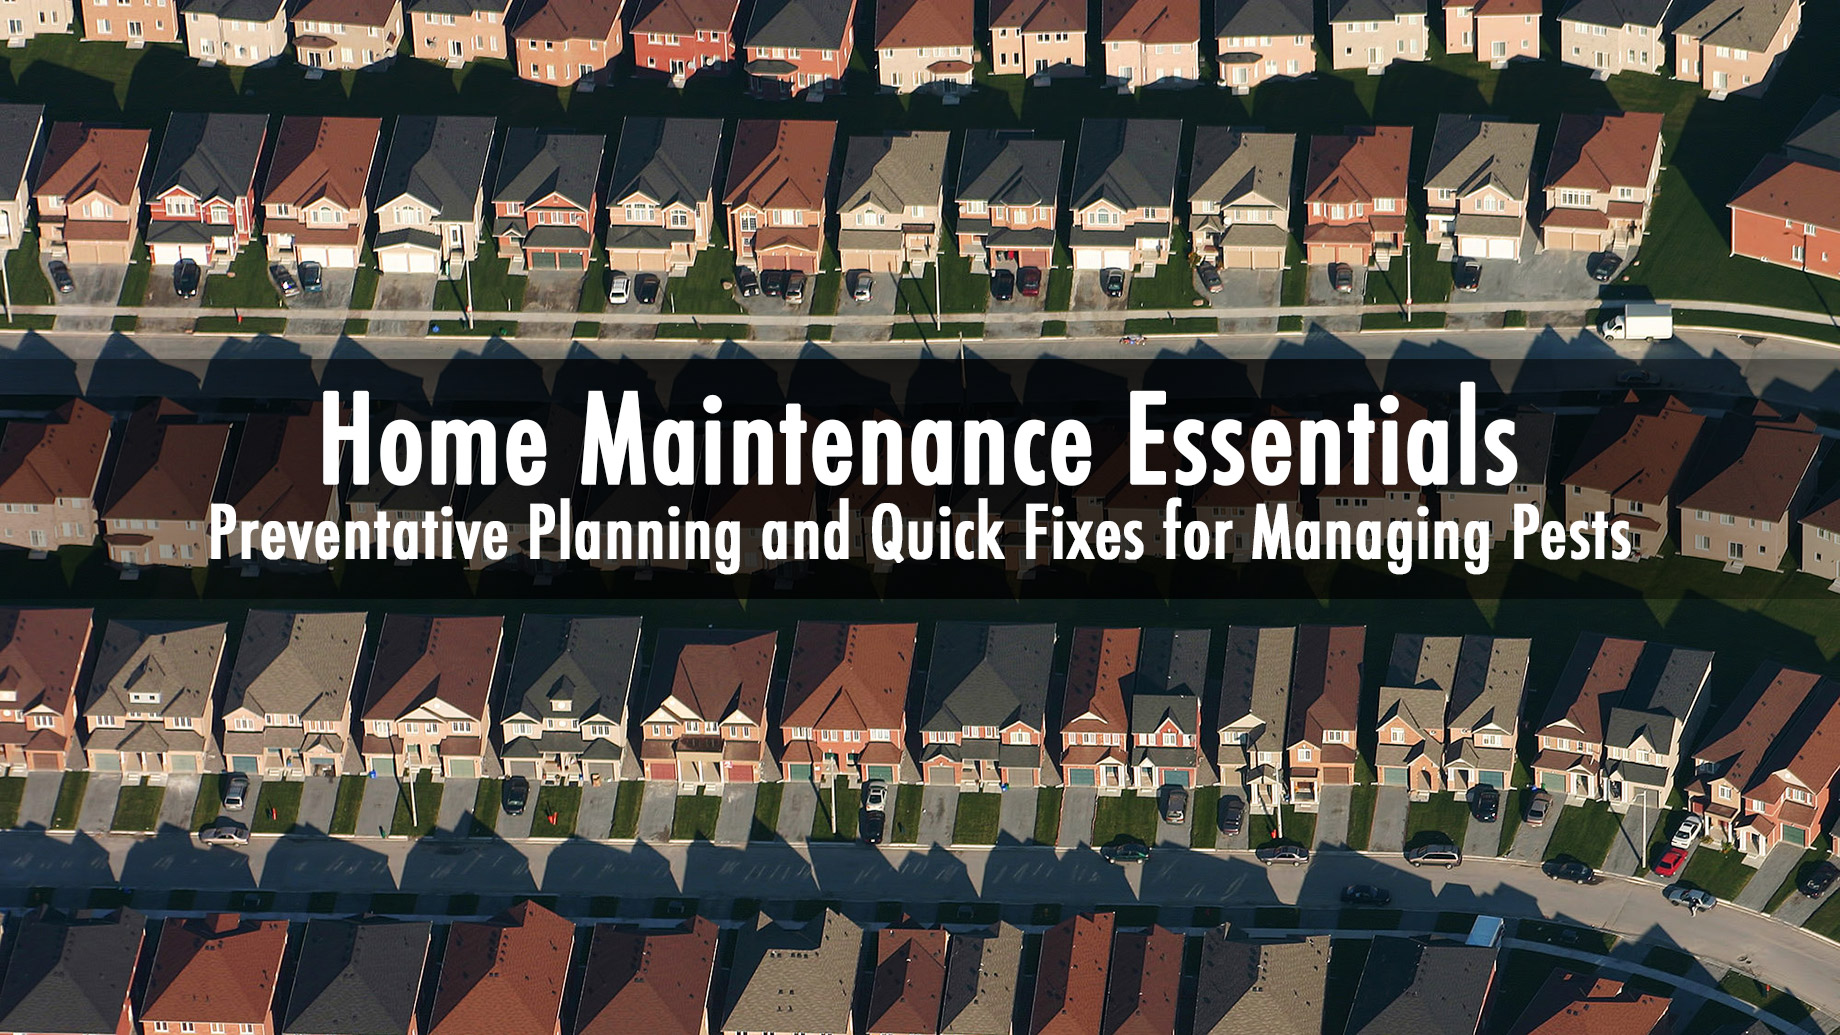 Home Maintenance Essentials - Preventative Planning and Quick Fixes for Managing Pests